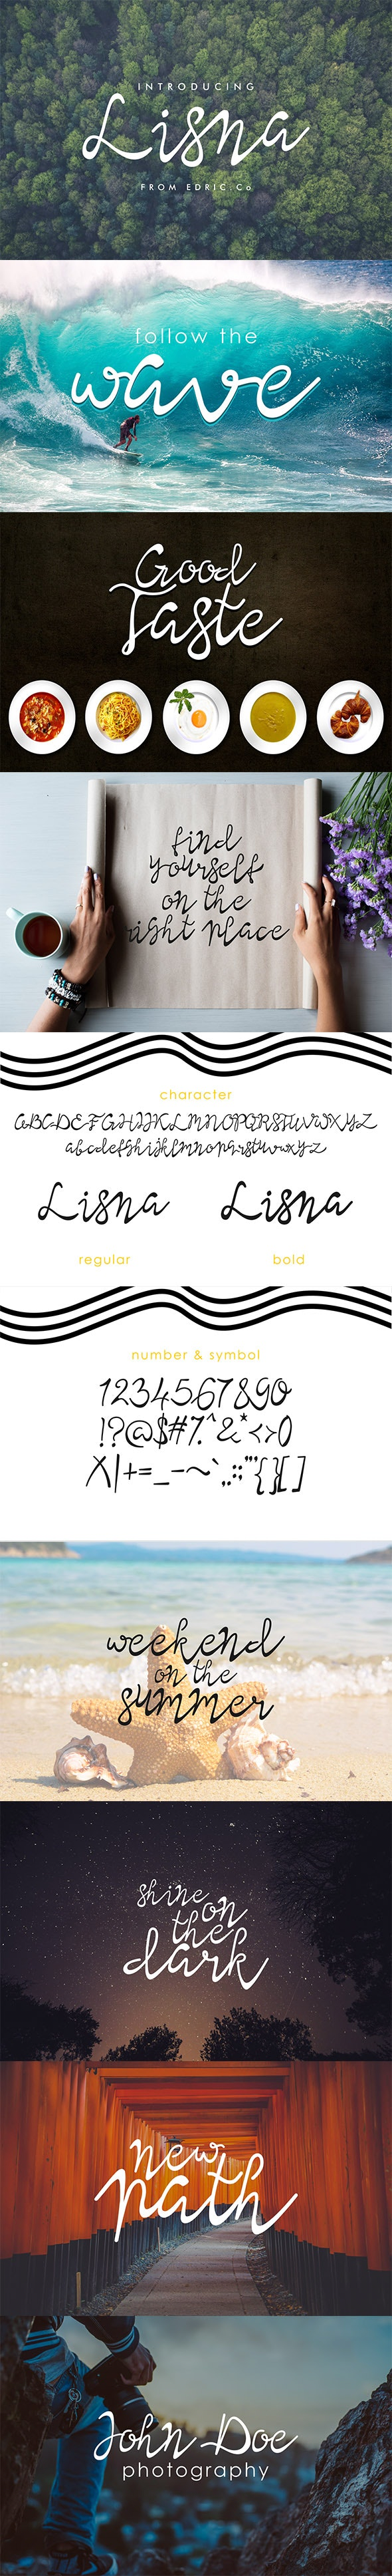 Lisna Manual Calligraphy Font Family - Calligraphy Script